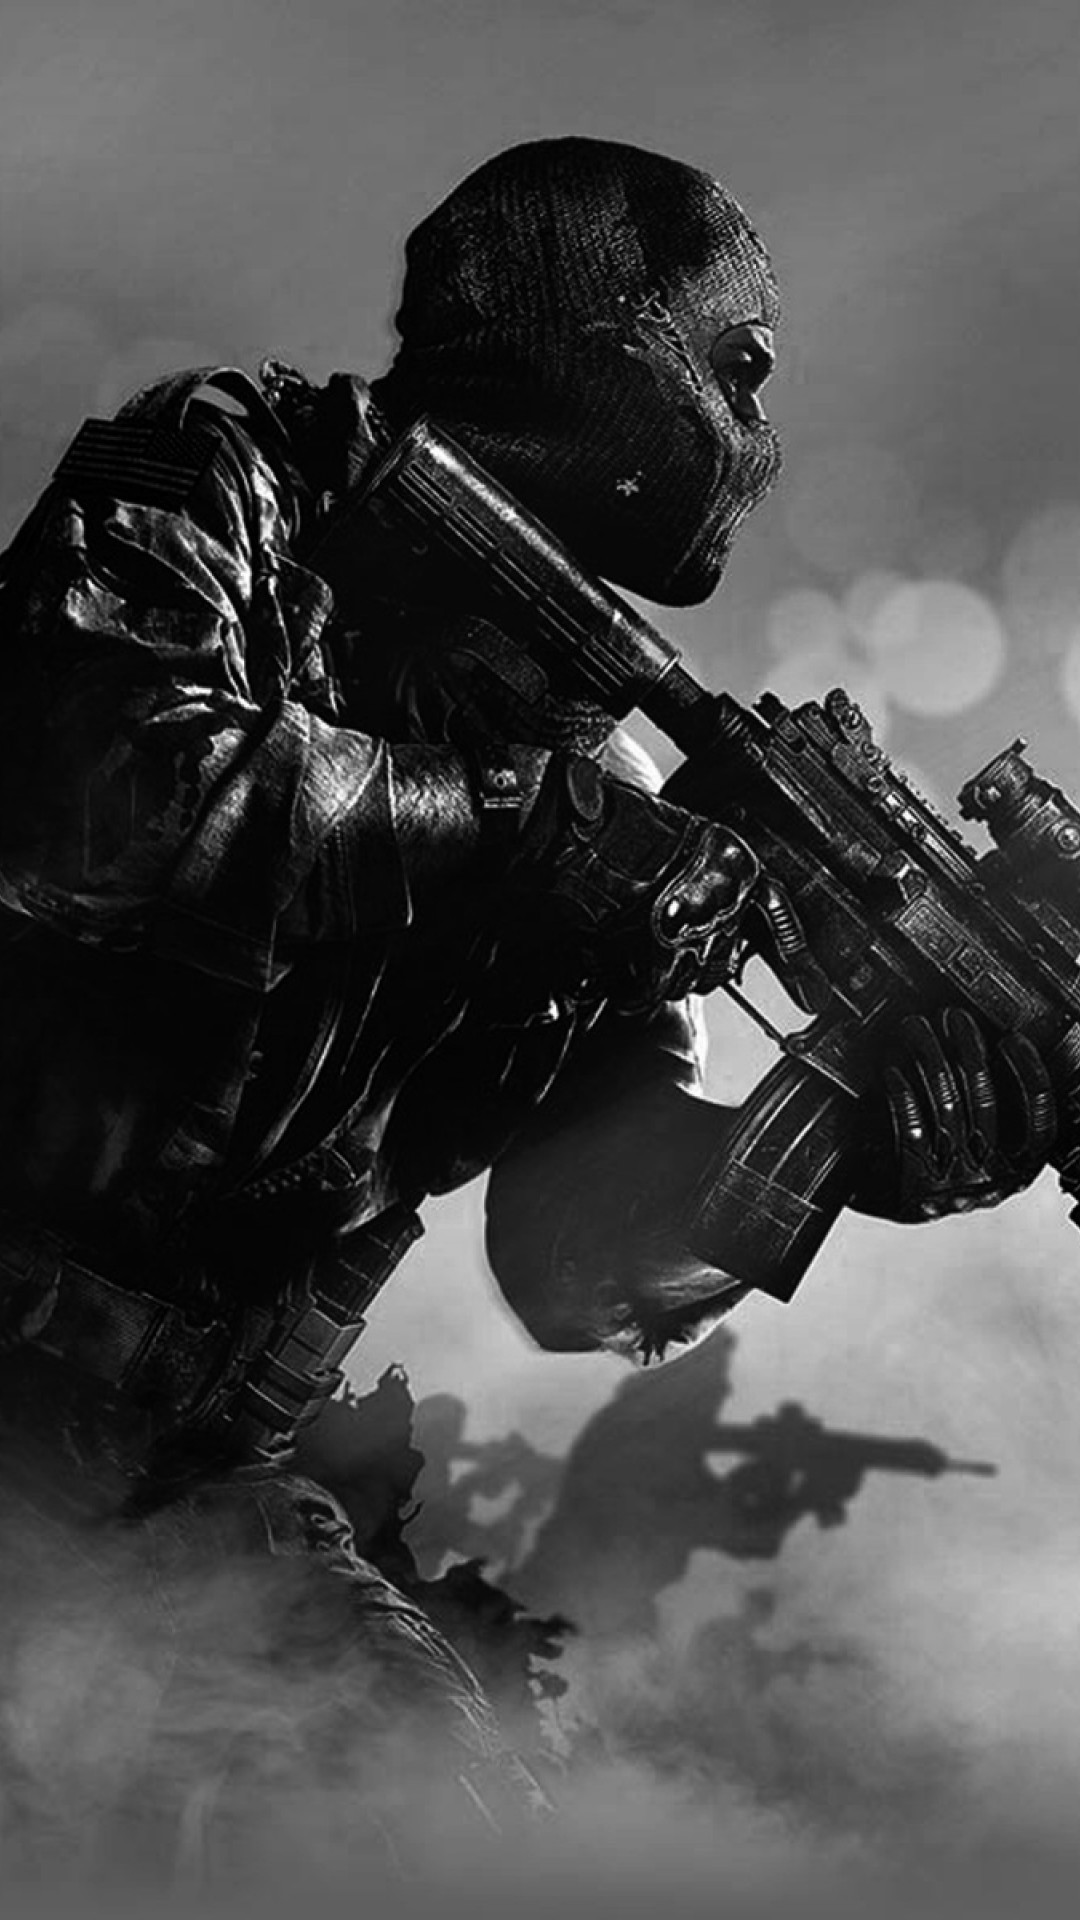 Call of duty iphone wallpaper 78 images - Call of duty ghost wallpaper hd iphone 5 ...